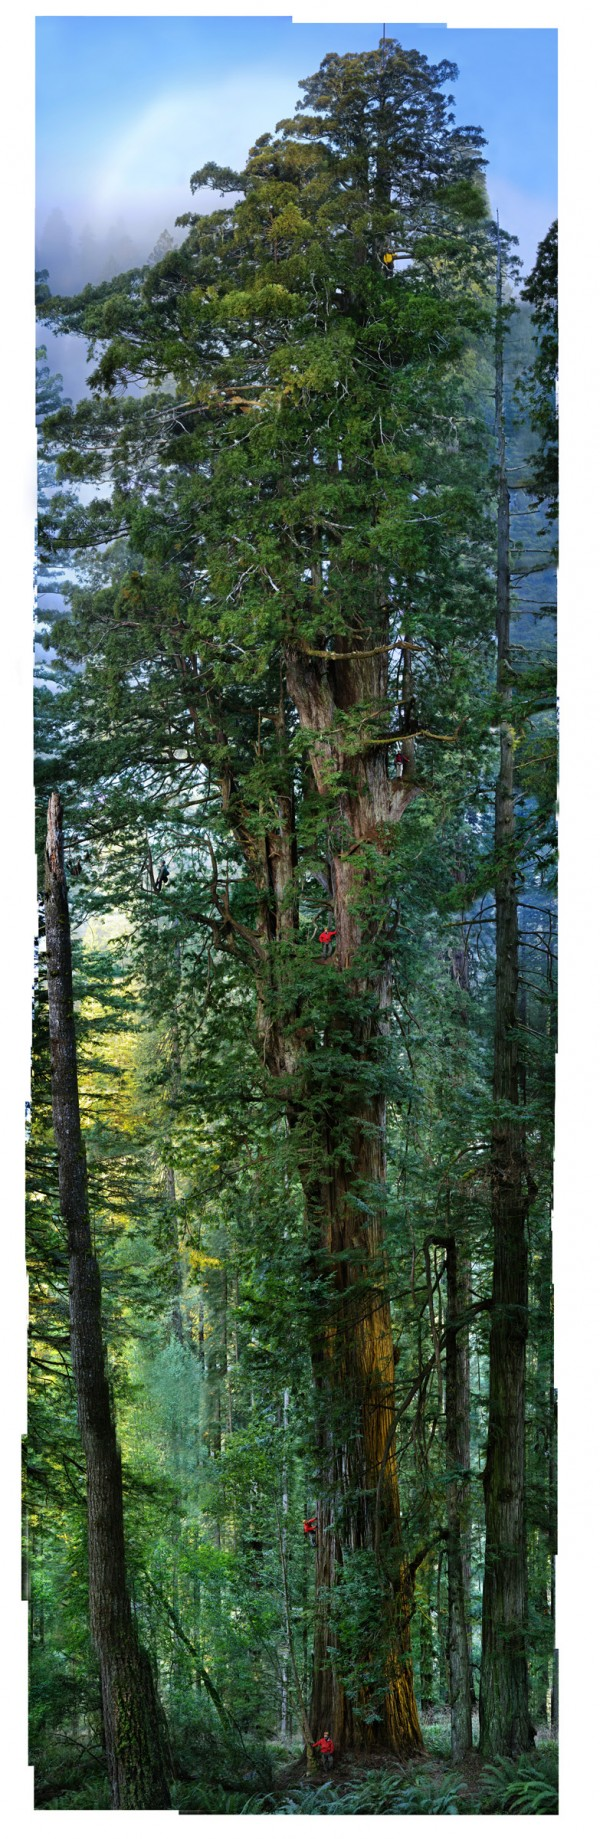 Redwood by Nick Nichols and National Geographic: 1,600 year old redwood captured by stitching 84 photos taken by three cameras on a robotized rig.